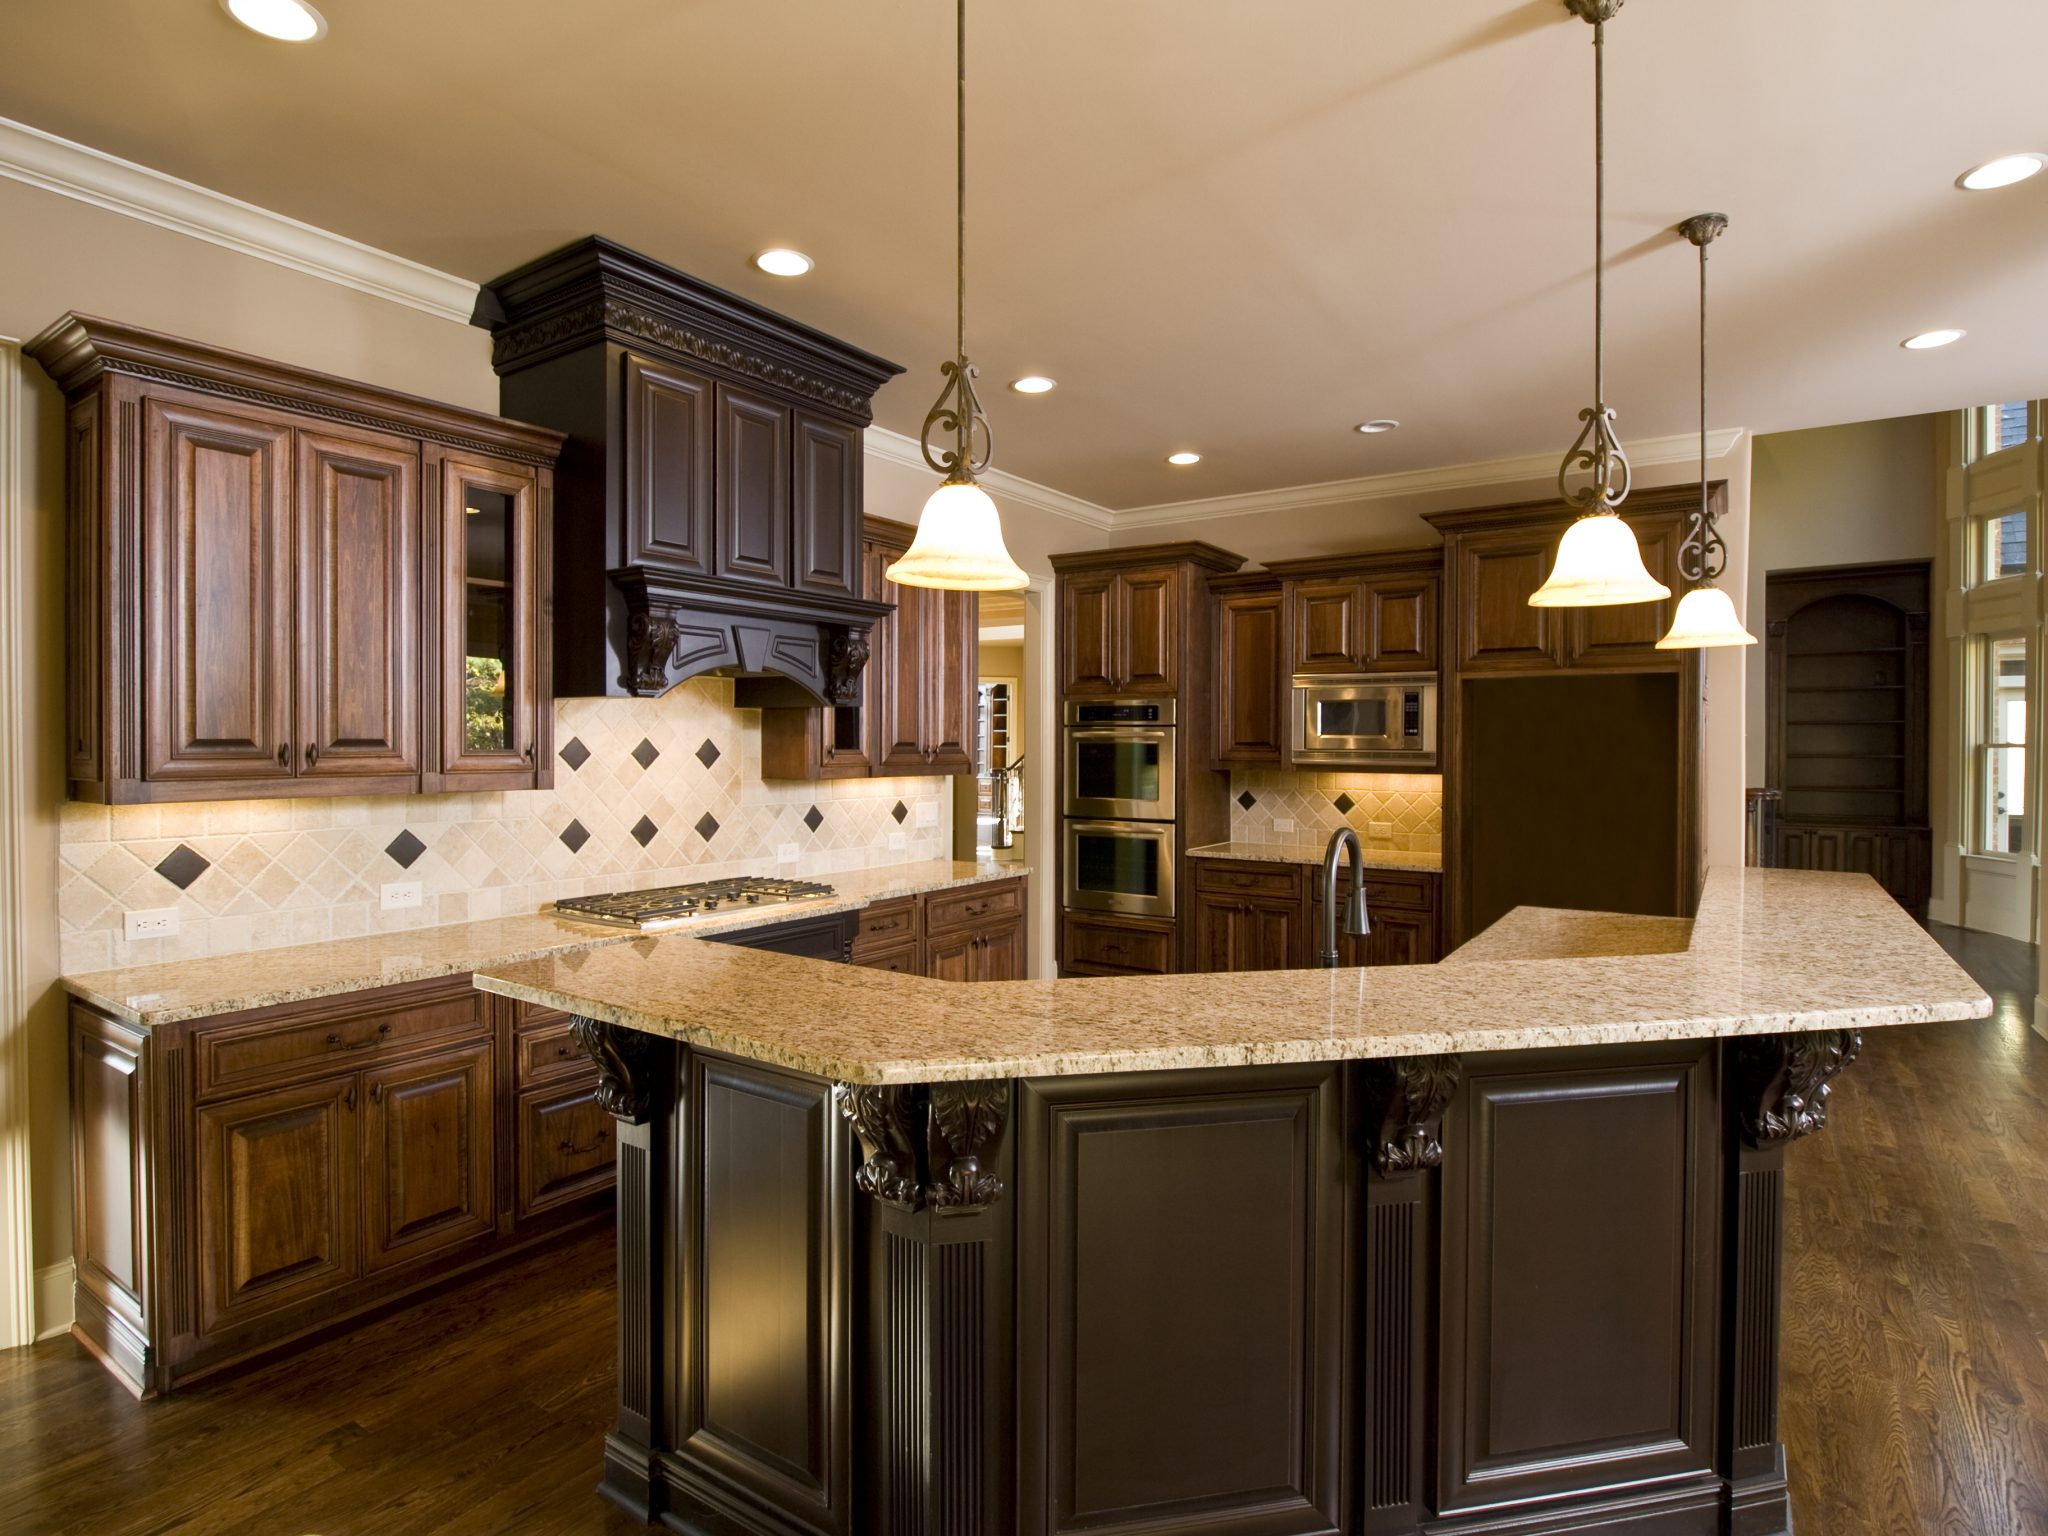 about us orlando home remodeling kitchen cabinet remodeling